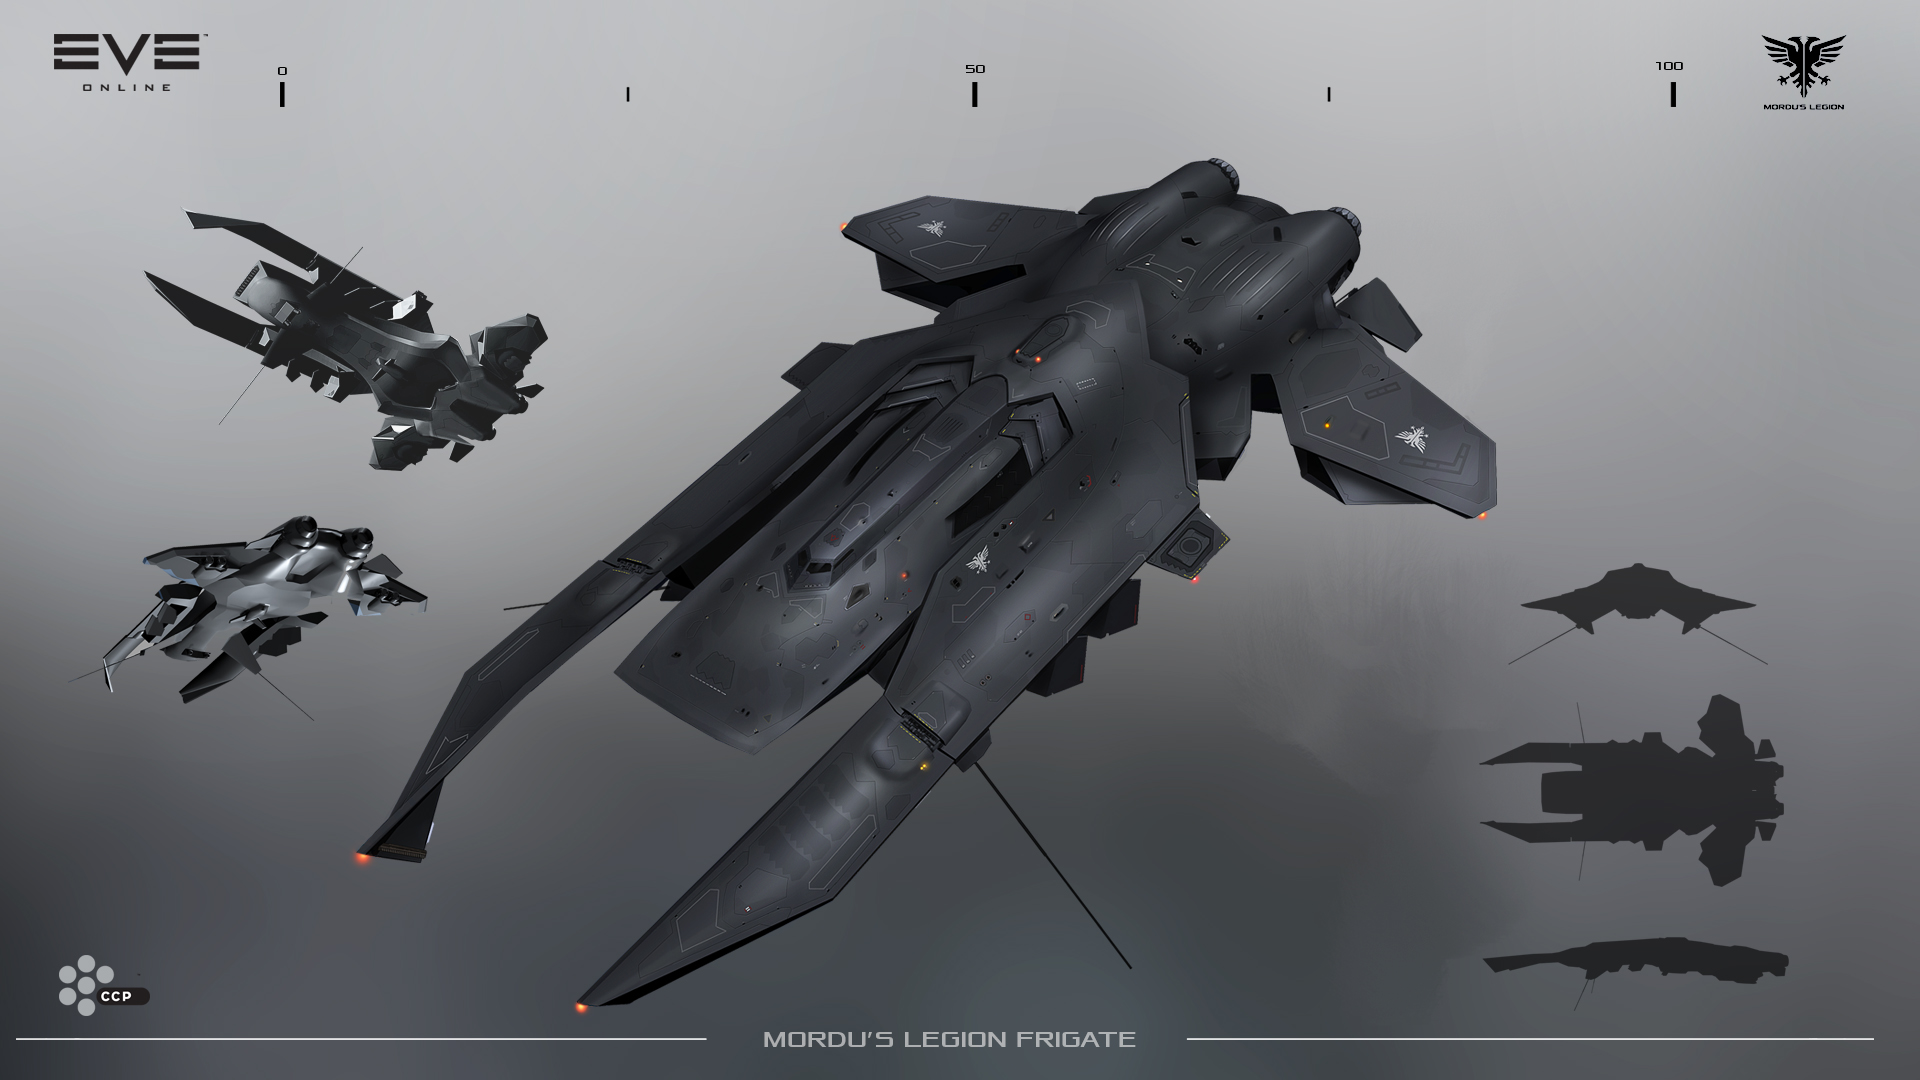 The new Mordu's Legion frigate, the Garmur - flat, black, and just plain cool looking.